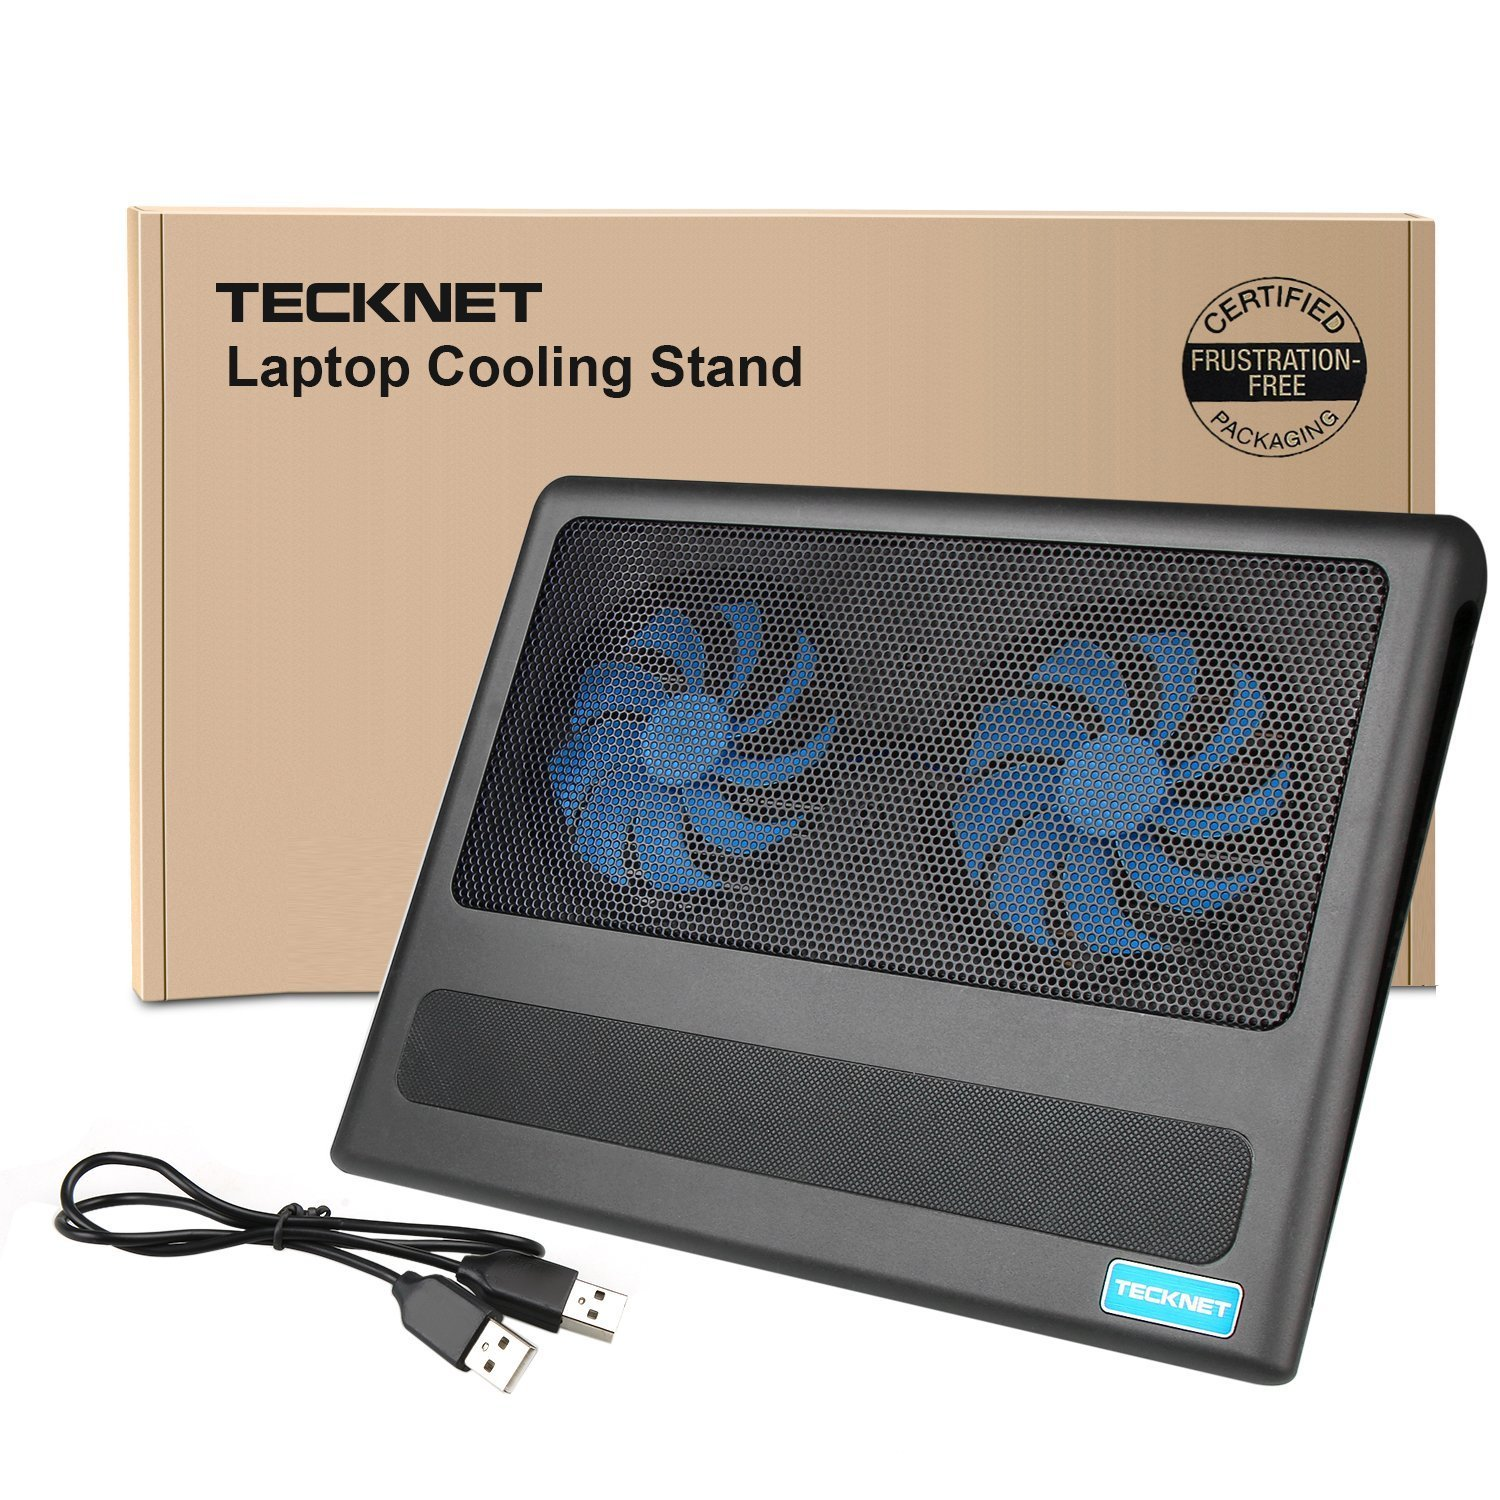 TeckNet Laptop Cooling Pad, Portable Ultra-Slim Quiet Laptop Notebook Cooler Cooling Pad Stand with 2 USB Powered Fans, Fits 12-16 Inches by TeckNet (Image #8)